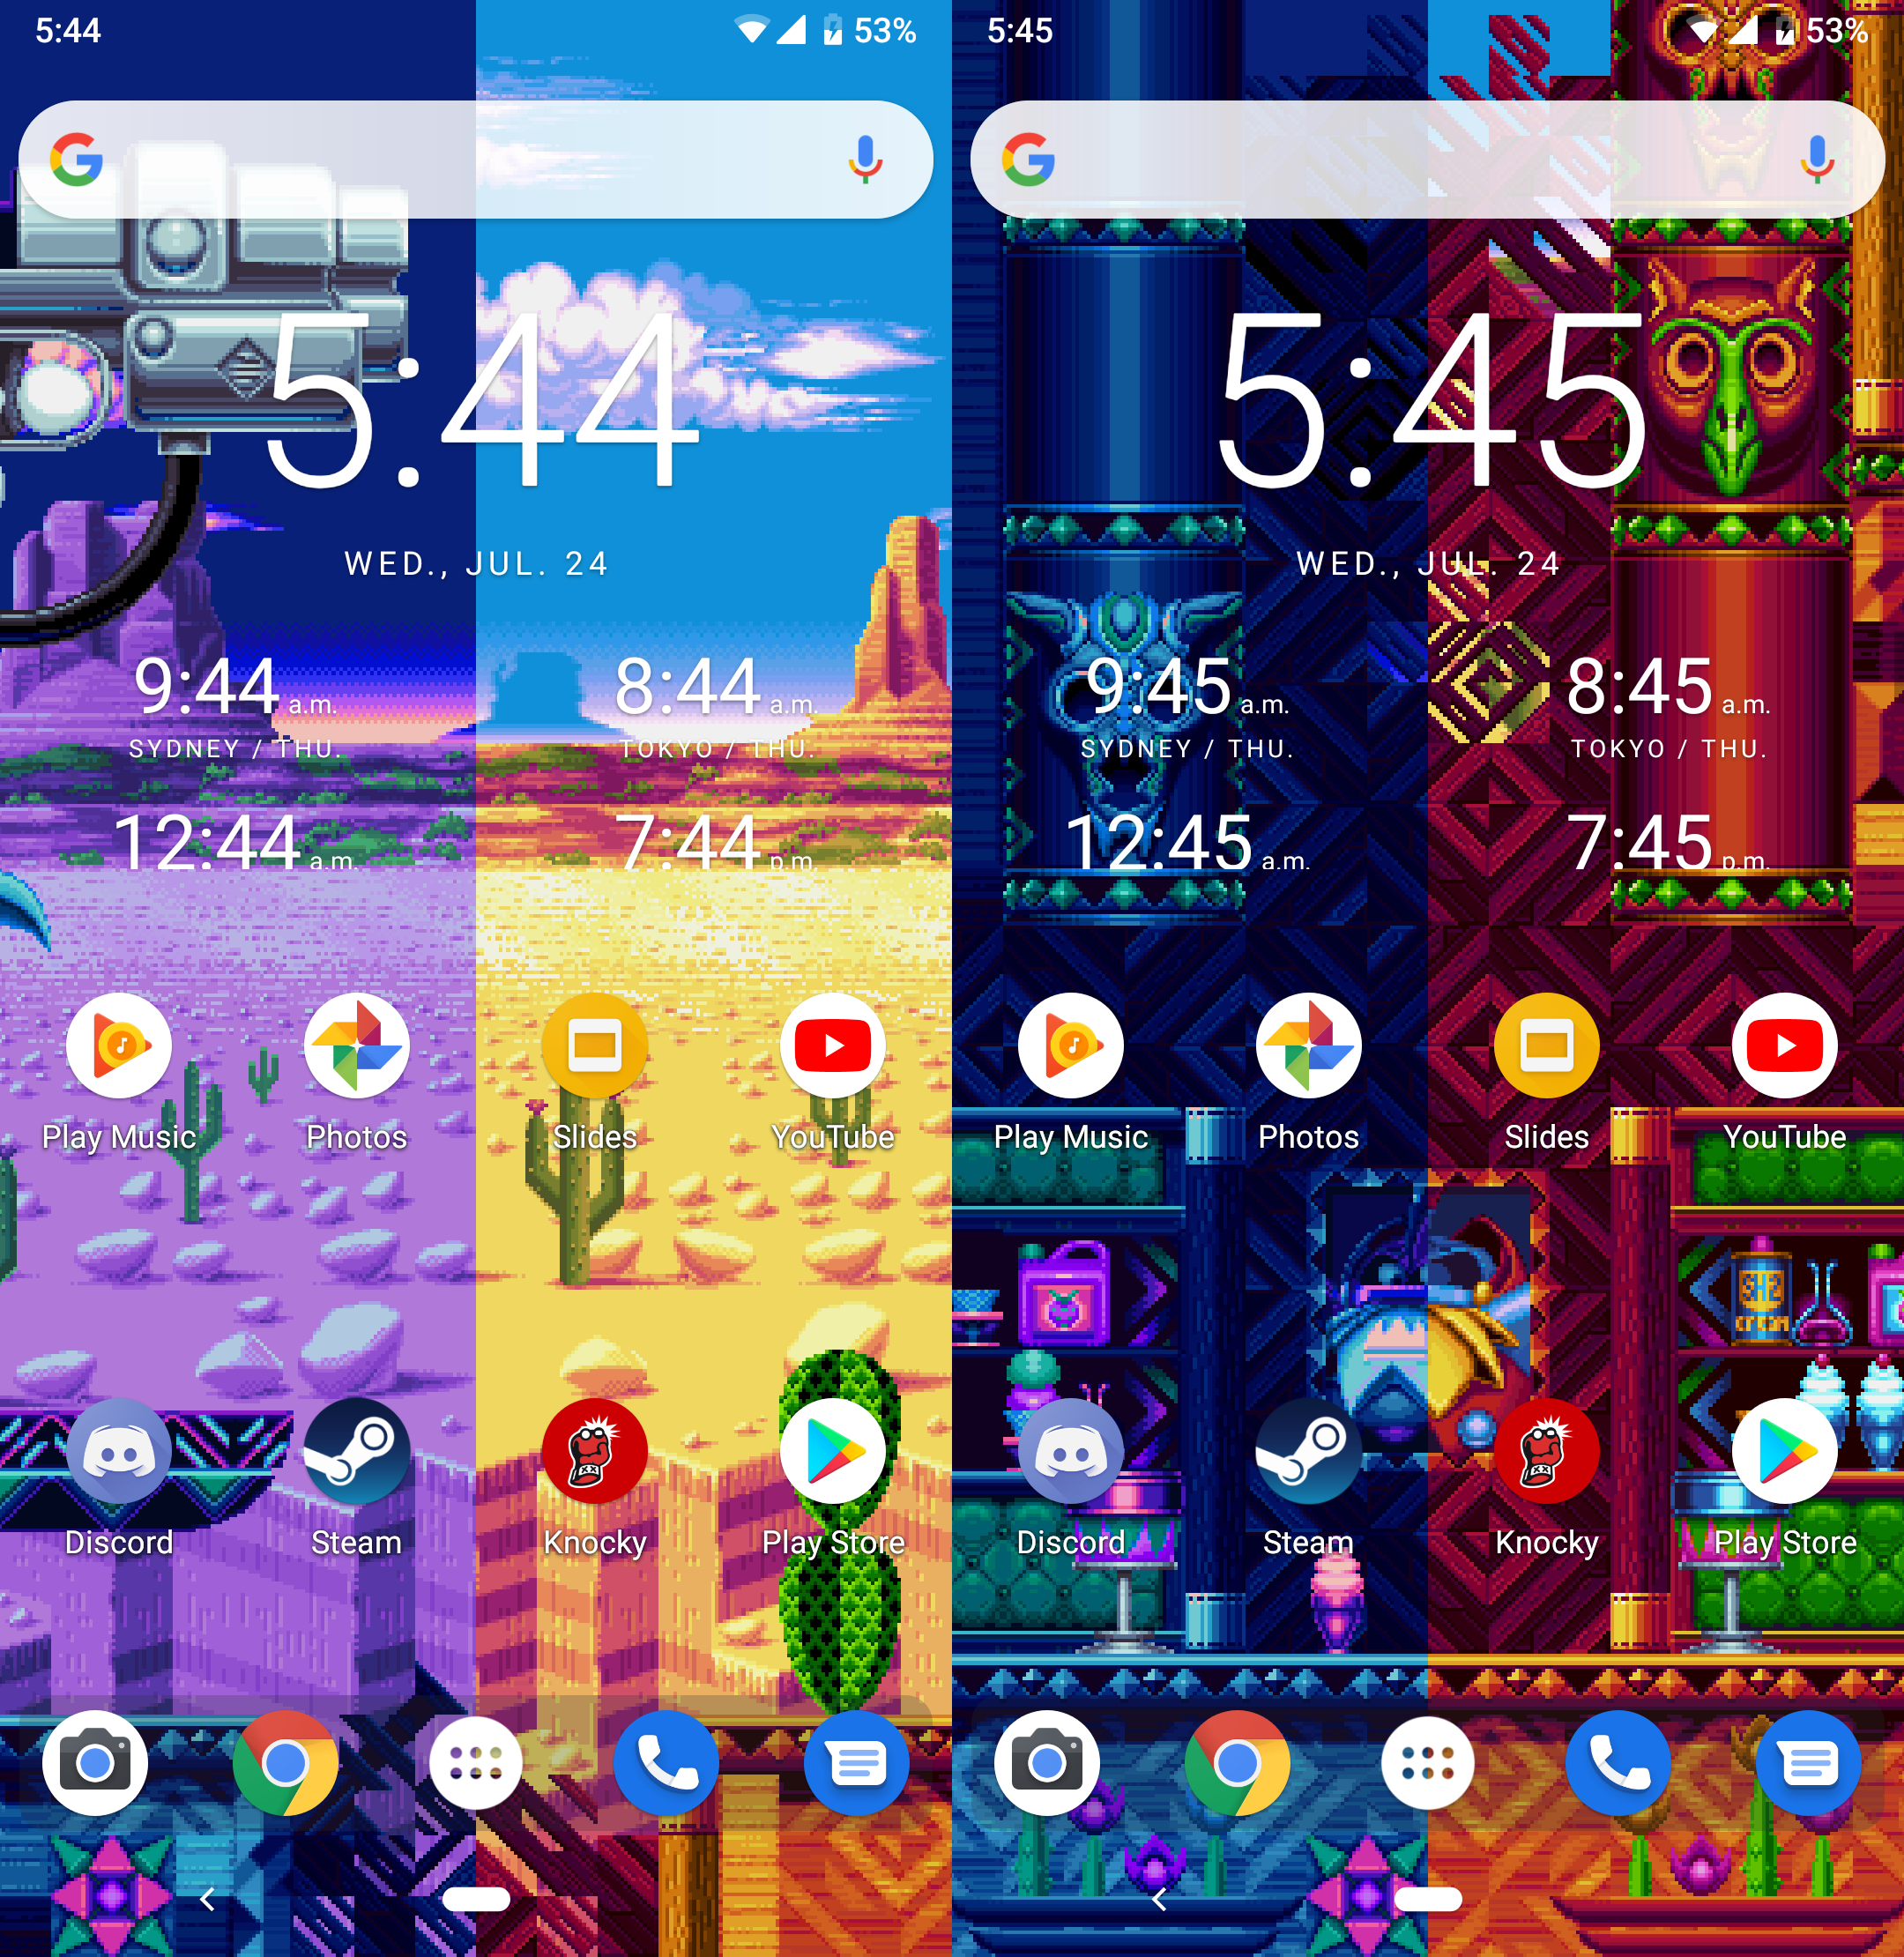 Sonic Mania Project: LWM (Live Wallpaper Maker) For